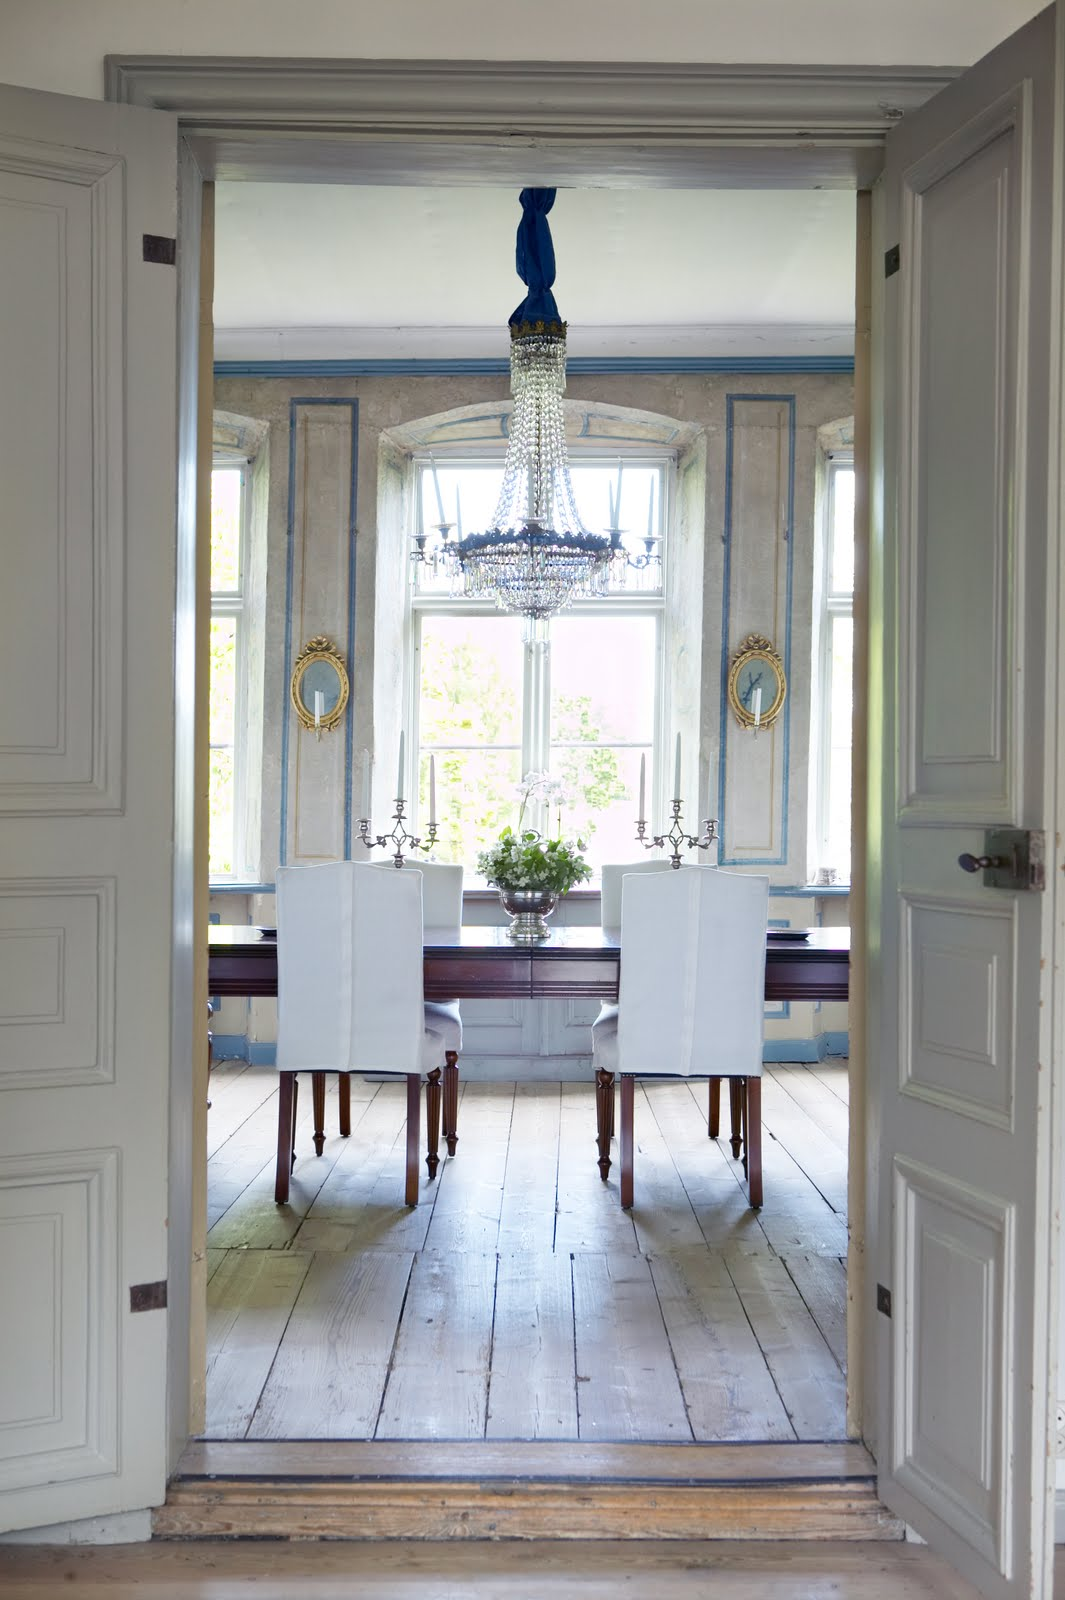 Swedish Interiors by Eleish van Breems: Lars Bolander's ...